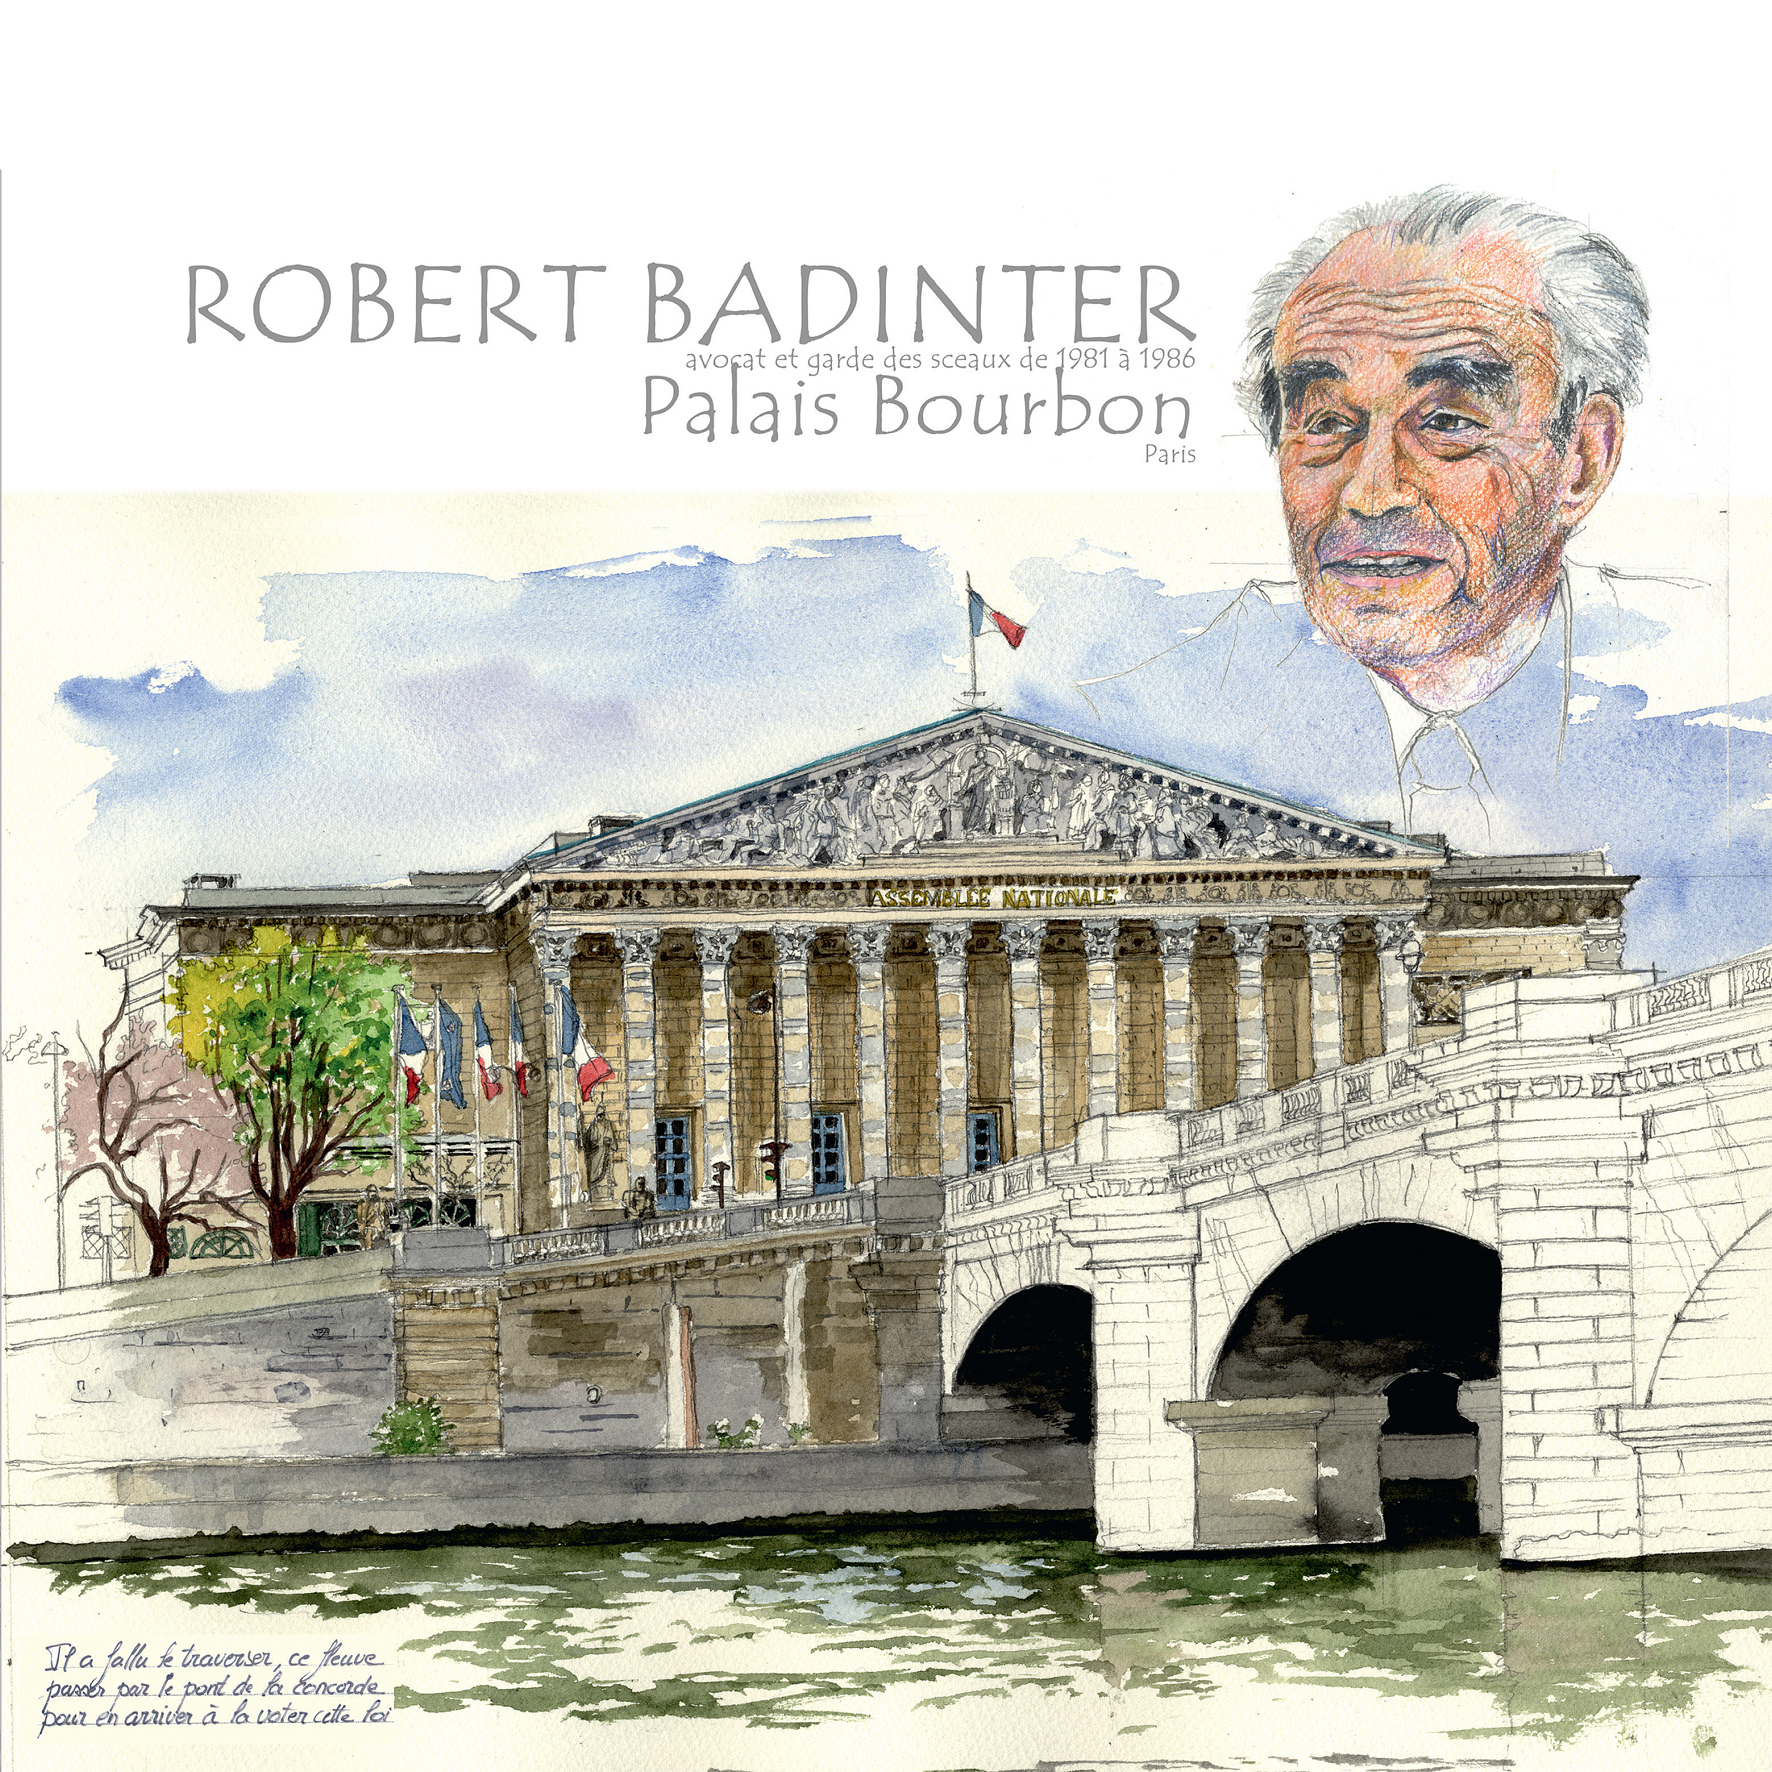 23-ROBERT BADINTER.jpg